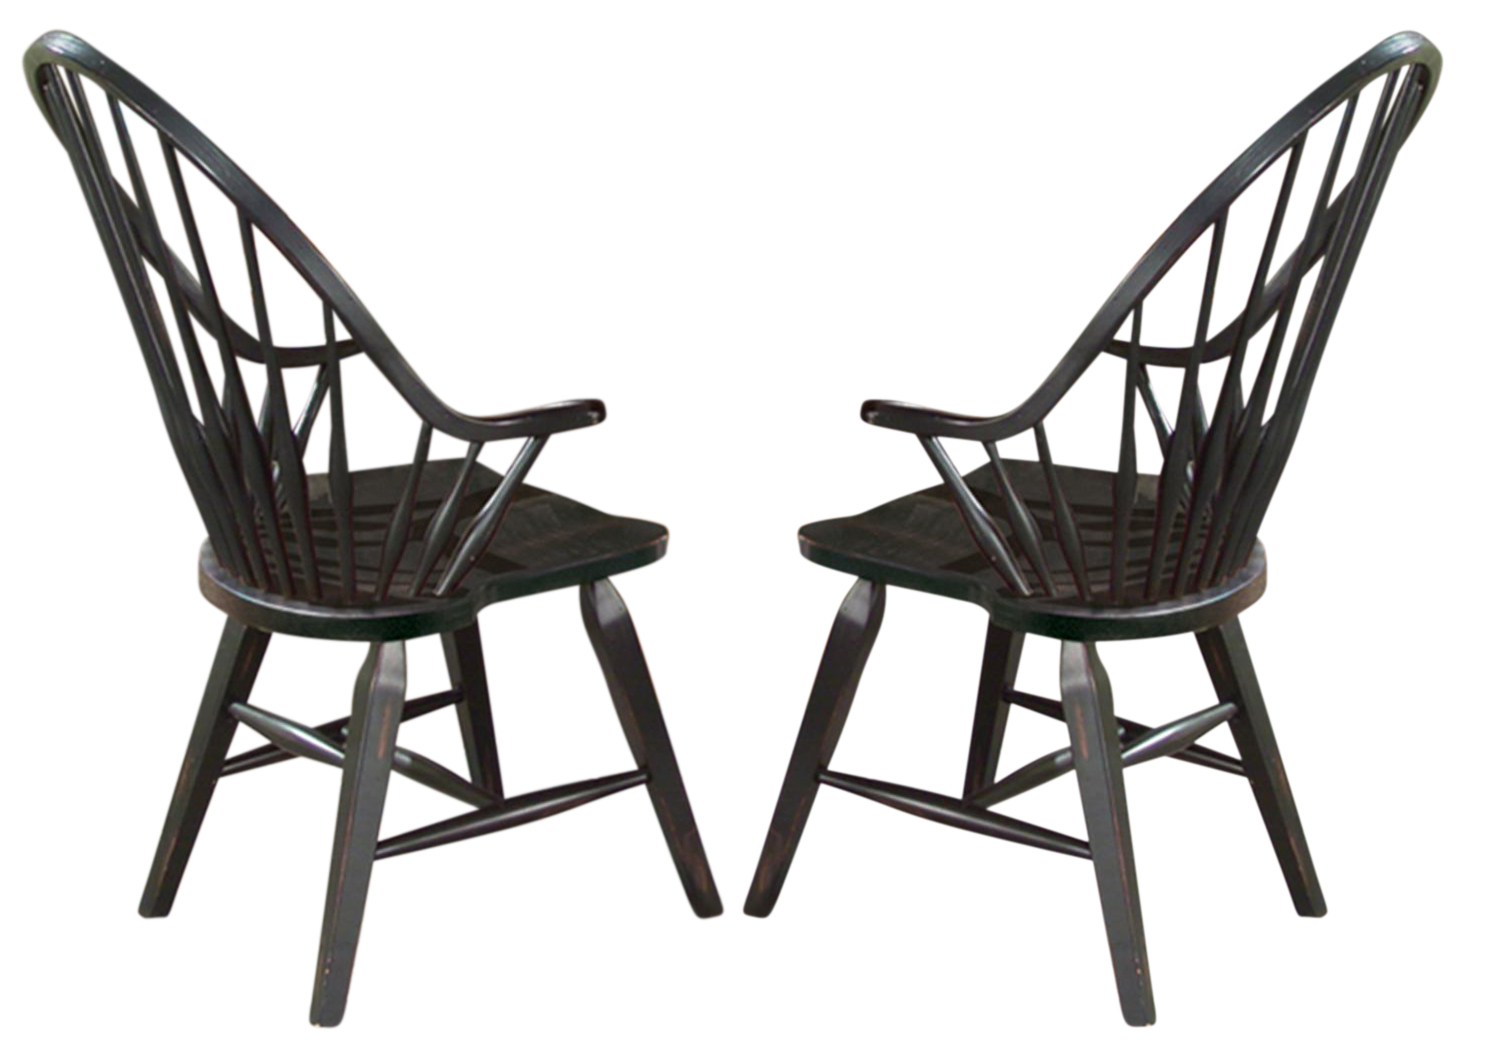 Black Windsor Chair Intercon Furniture Rustic Traditions Windsor Arm Chair In